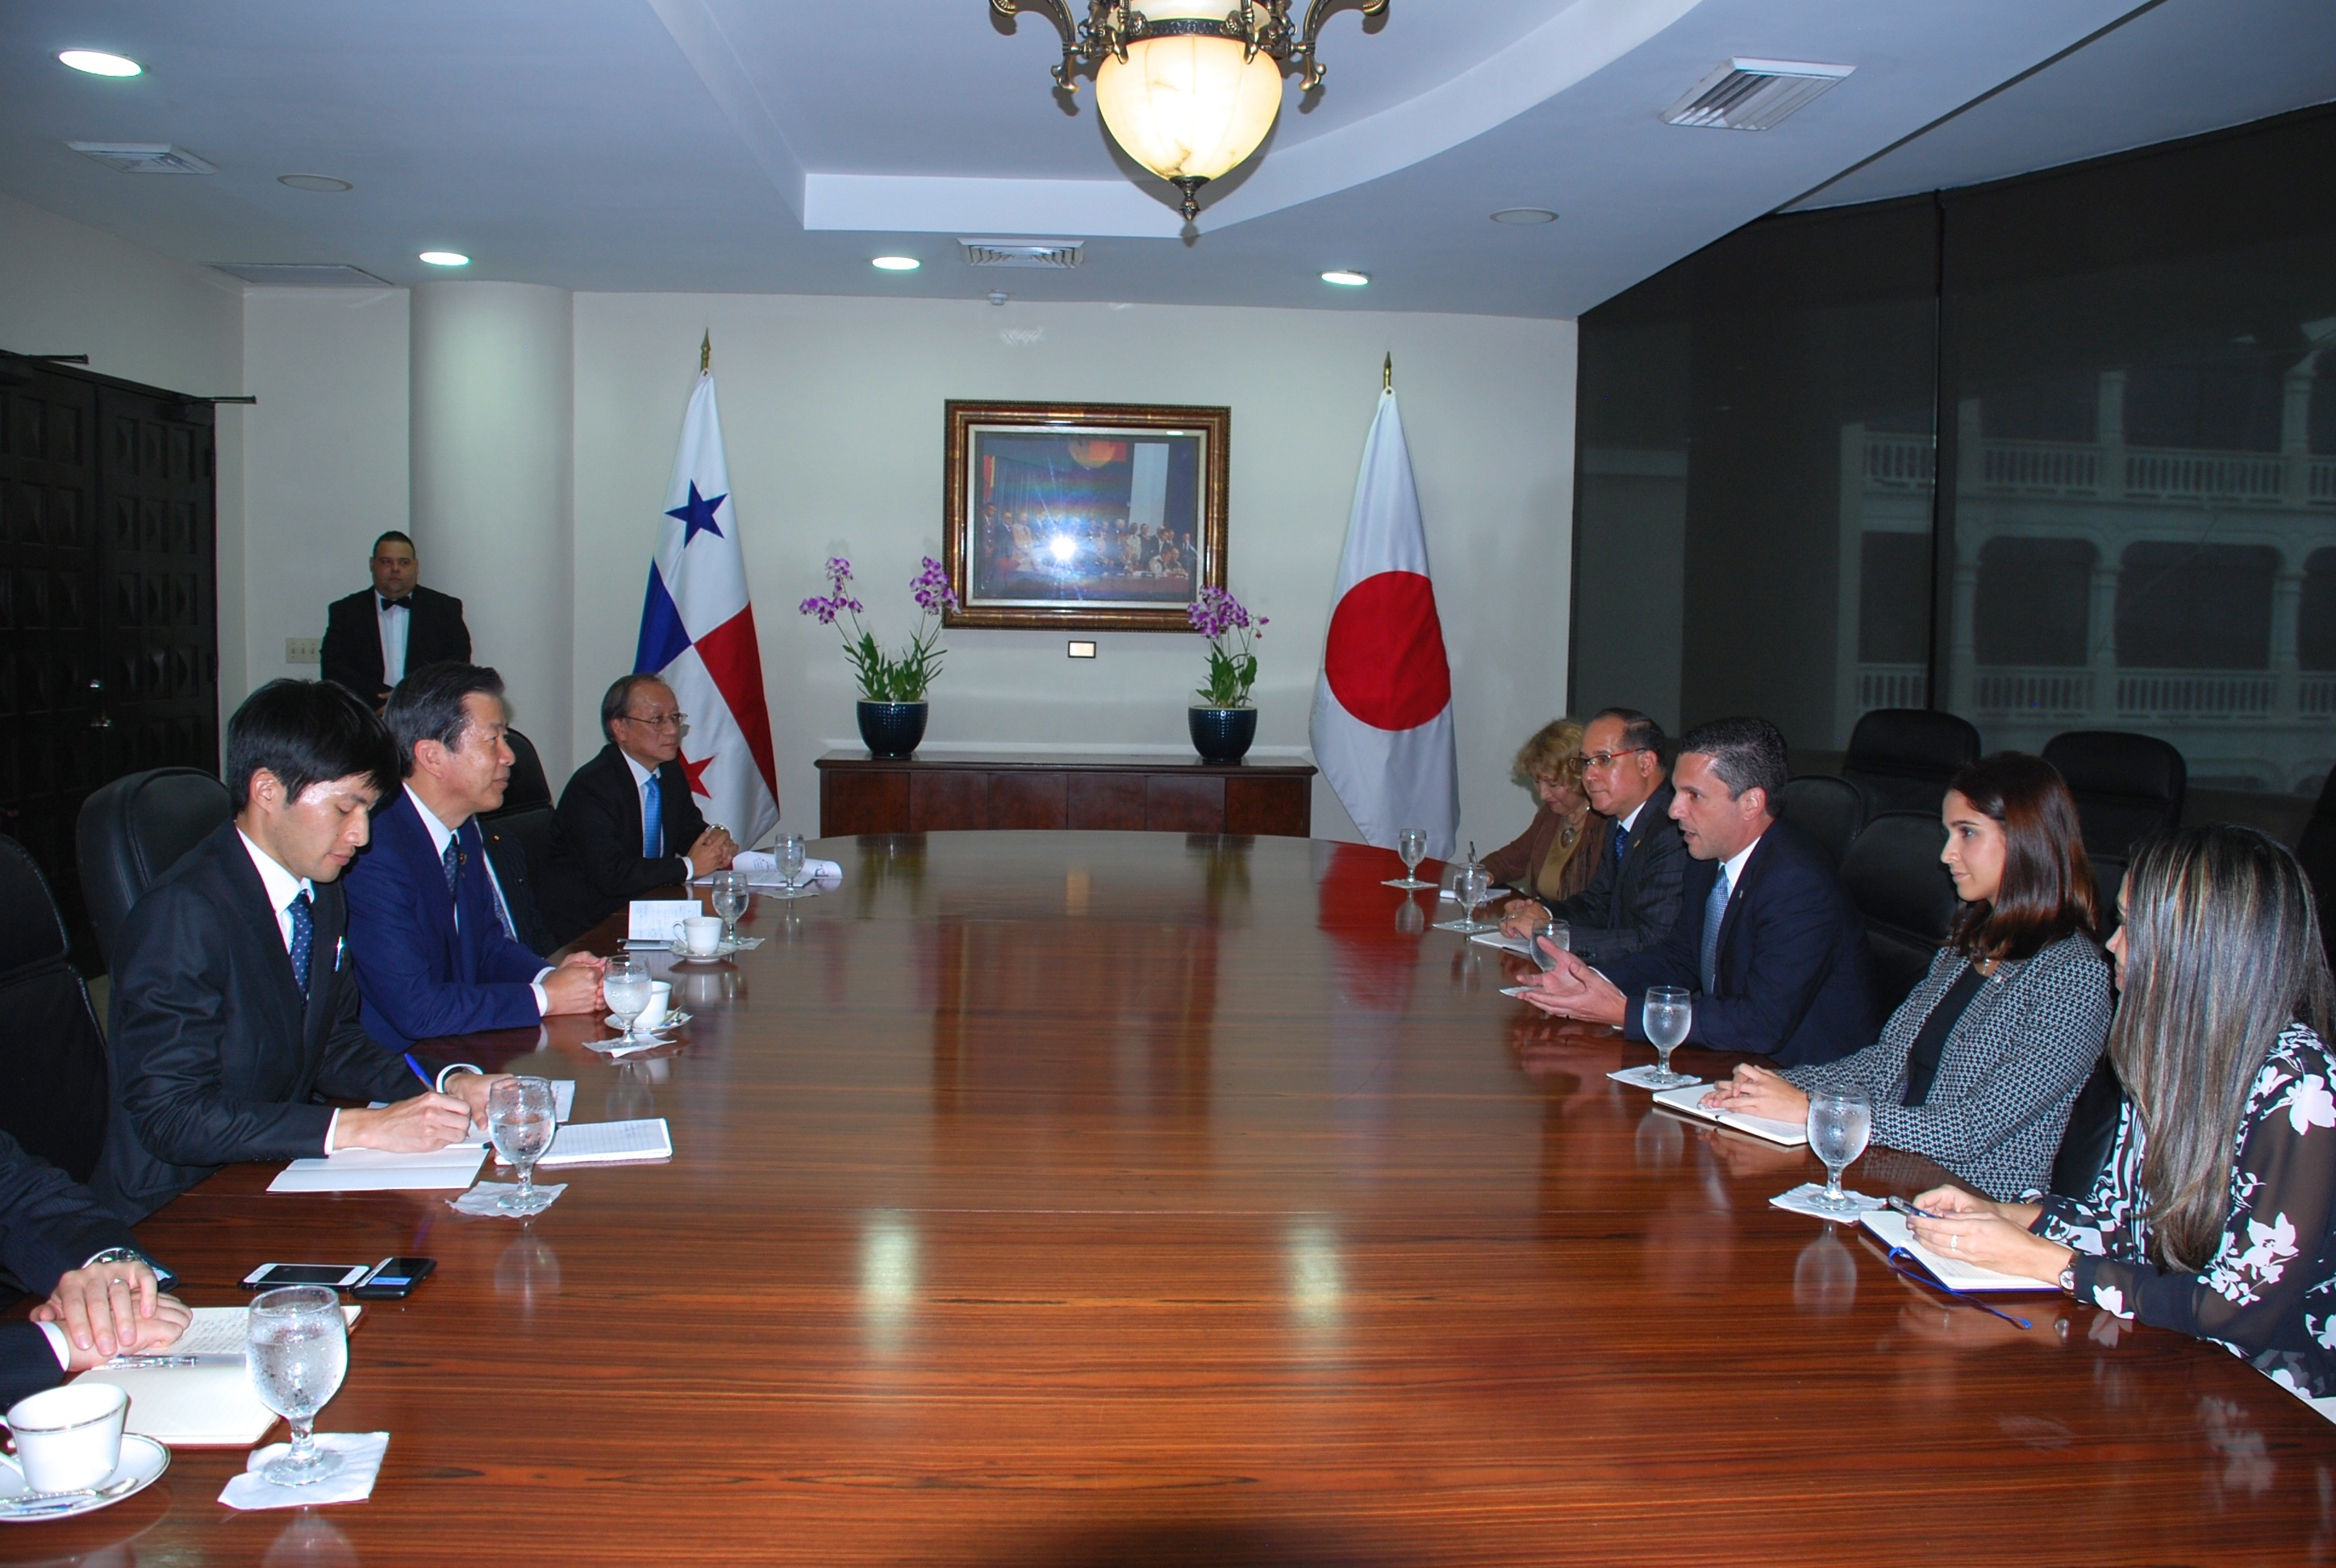 Meeting with Vice-Minister Hincapié at the Ministry of Foreign Affairs